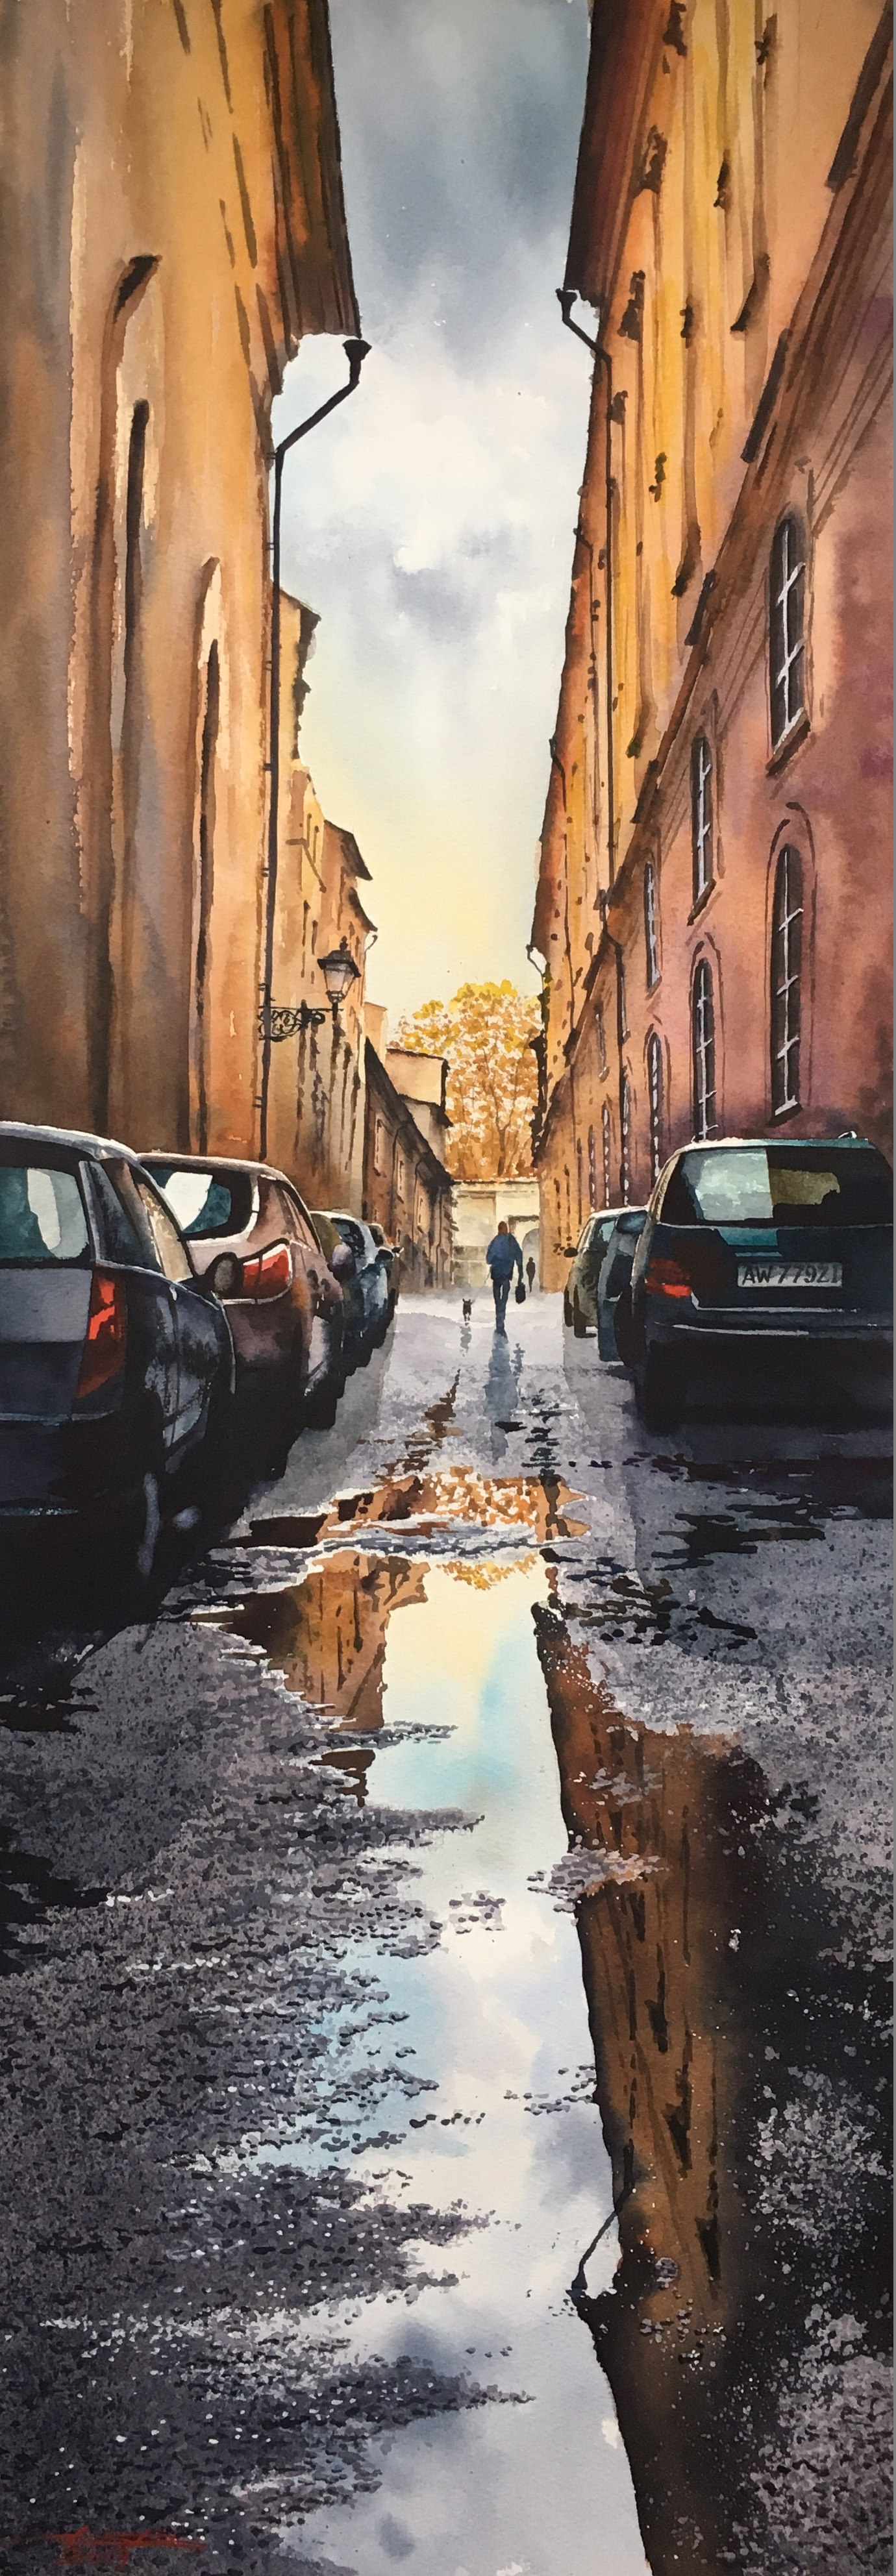 Rainy day/ Rome/Italy